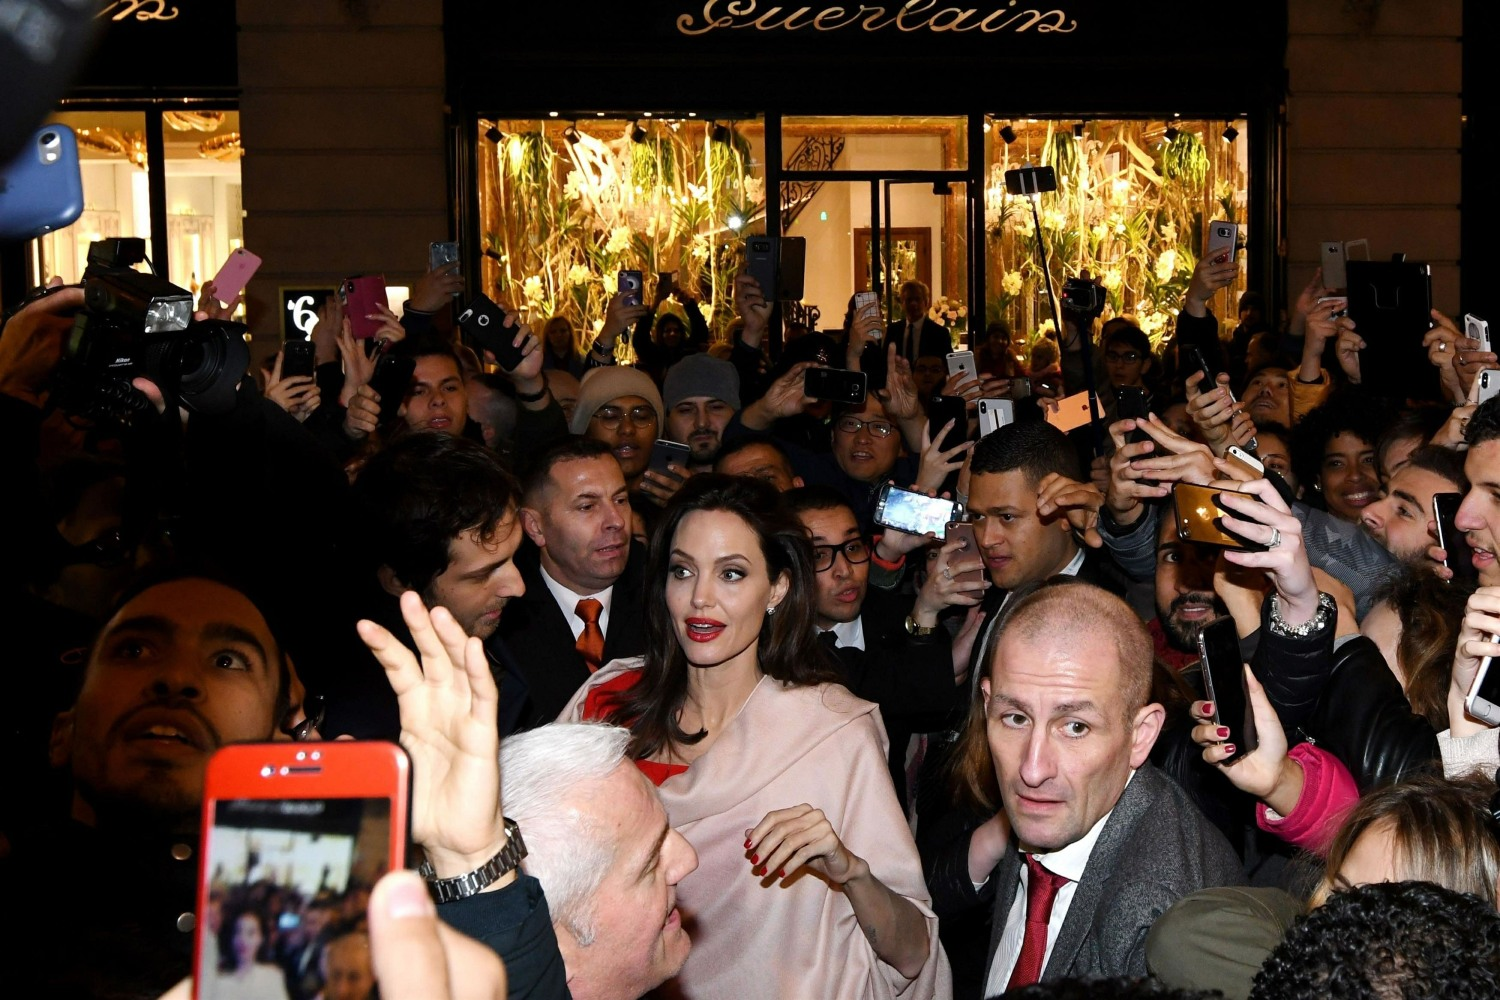 Angelina Jolie gets surrounded by fans as she leaves the Guerlain HQ